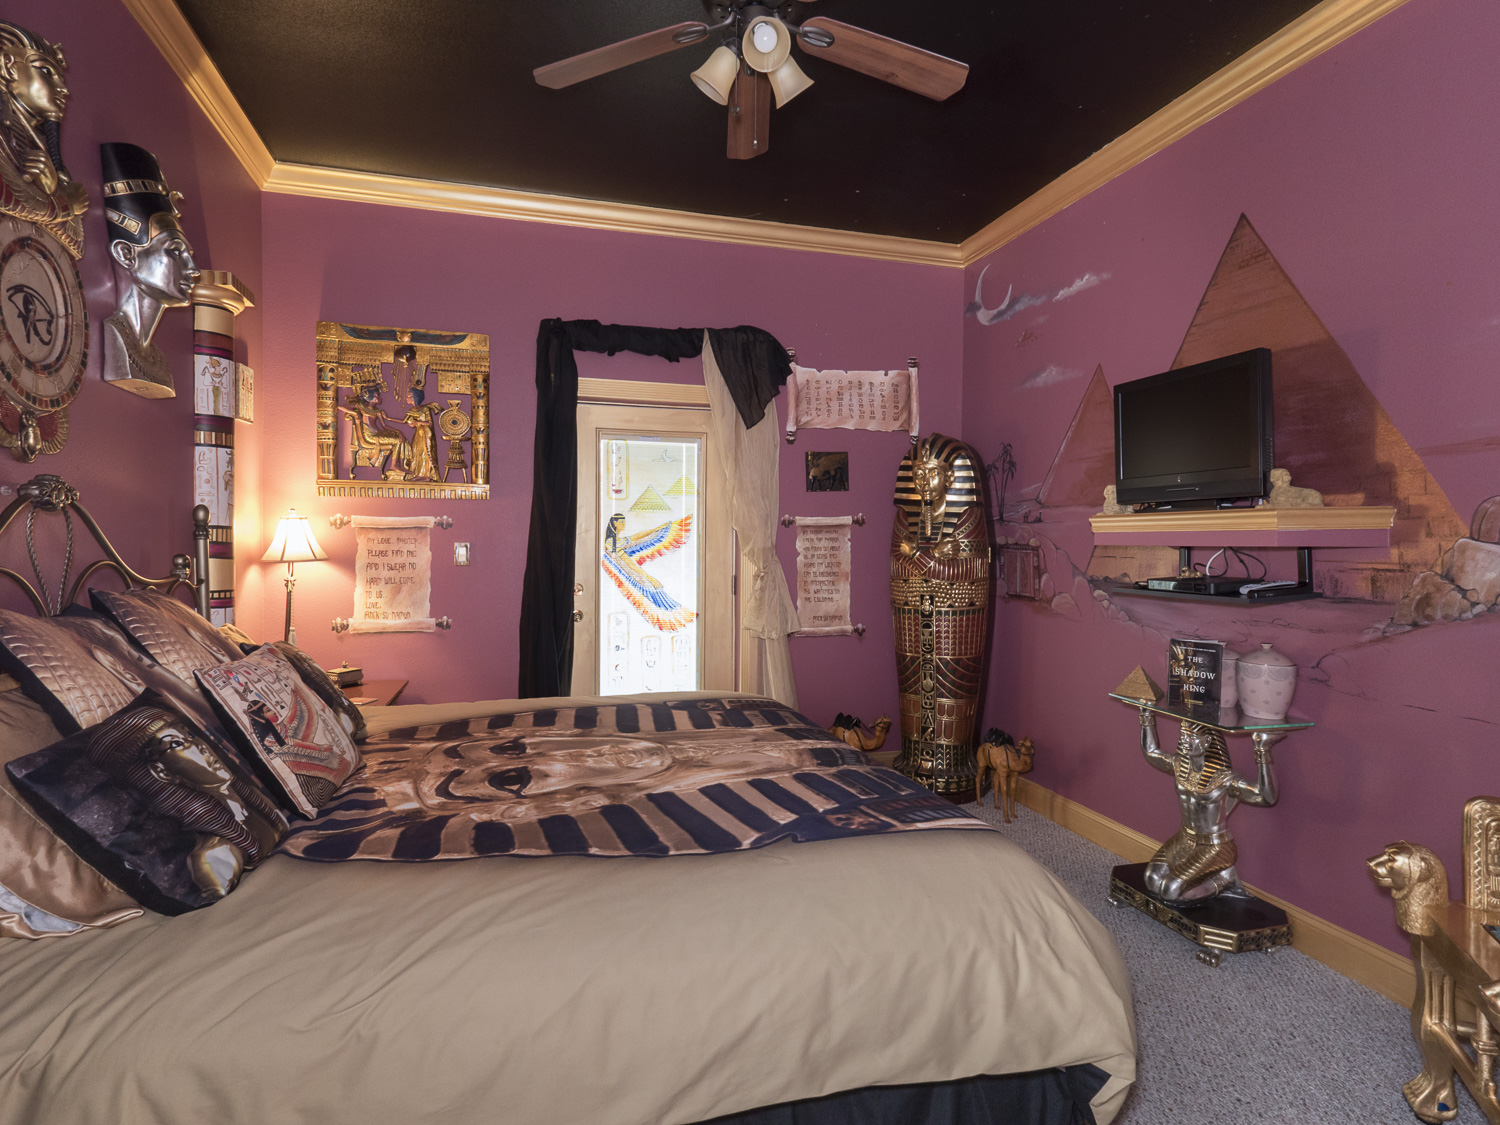 egyptian themed bedroom - mummy room at The Ever After Estate near Orlando, FL